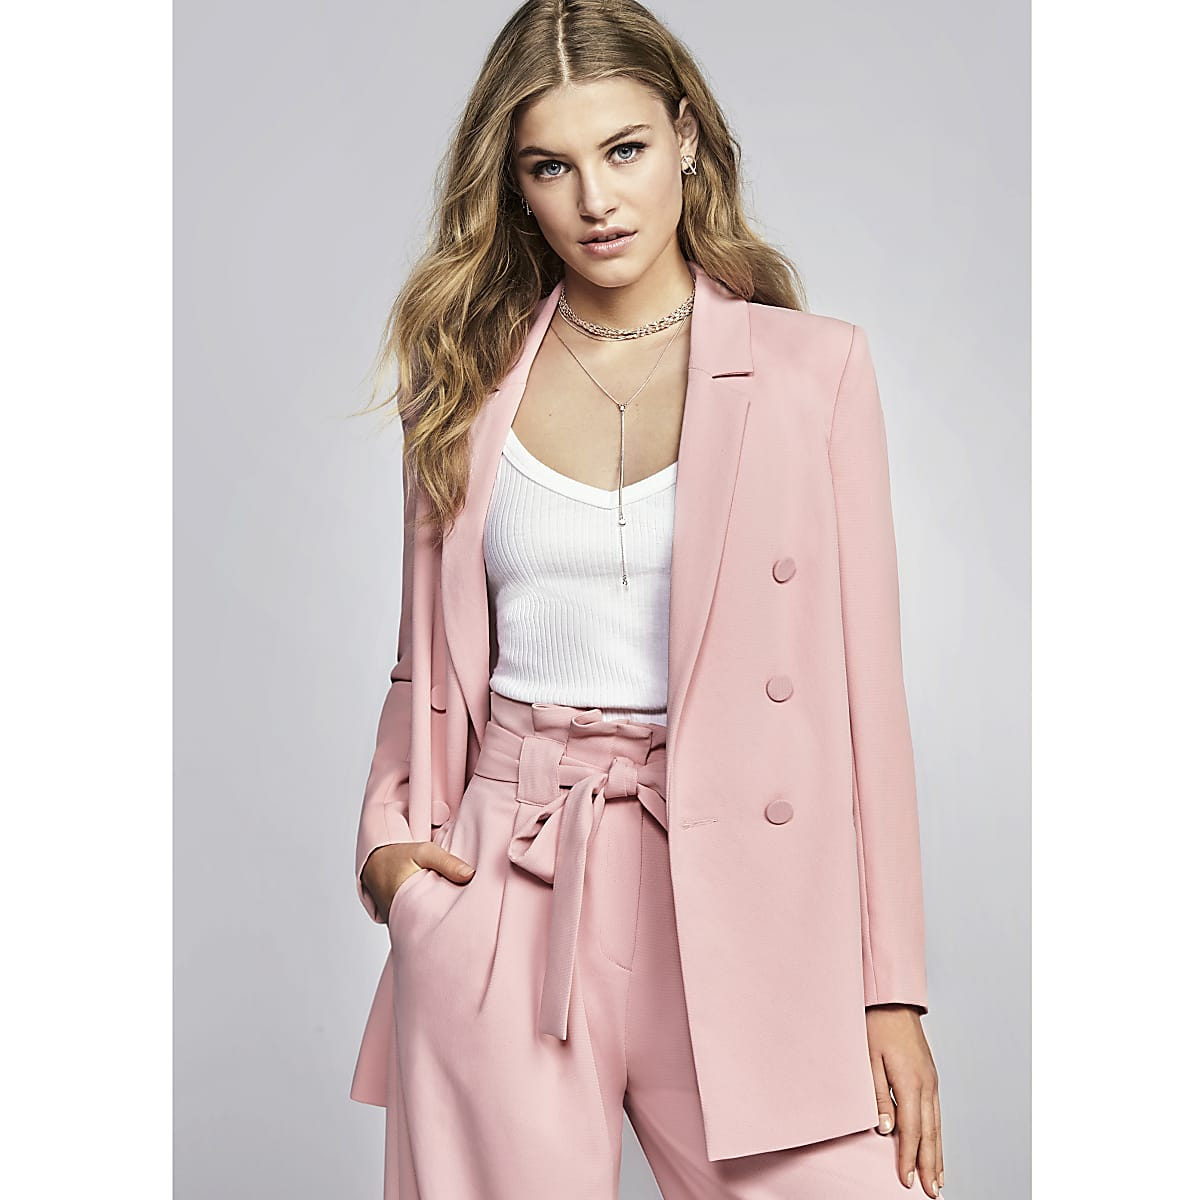 Pink double breasted style blazer